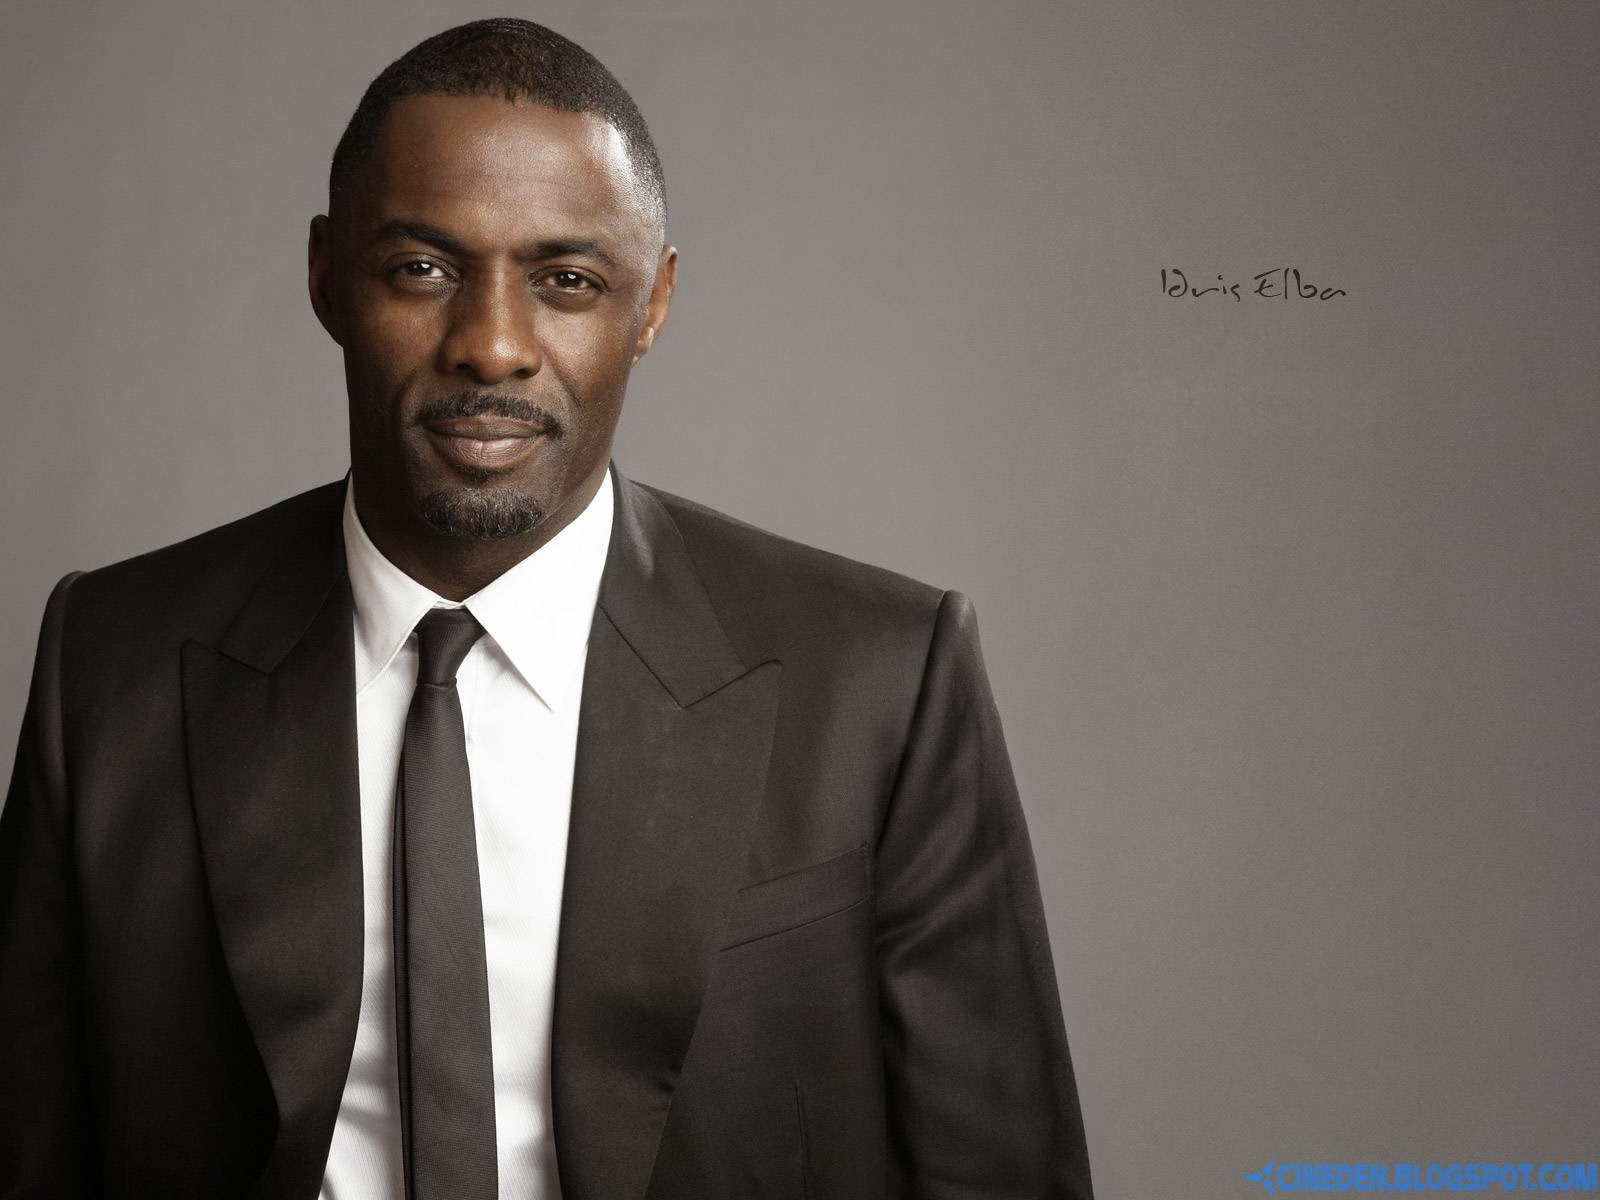 Idris Elba dating make-up artist - CineDen